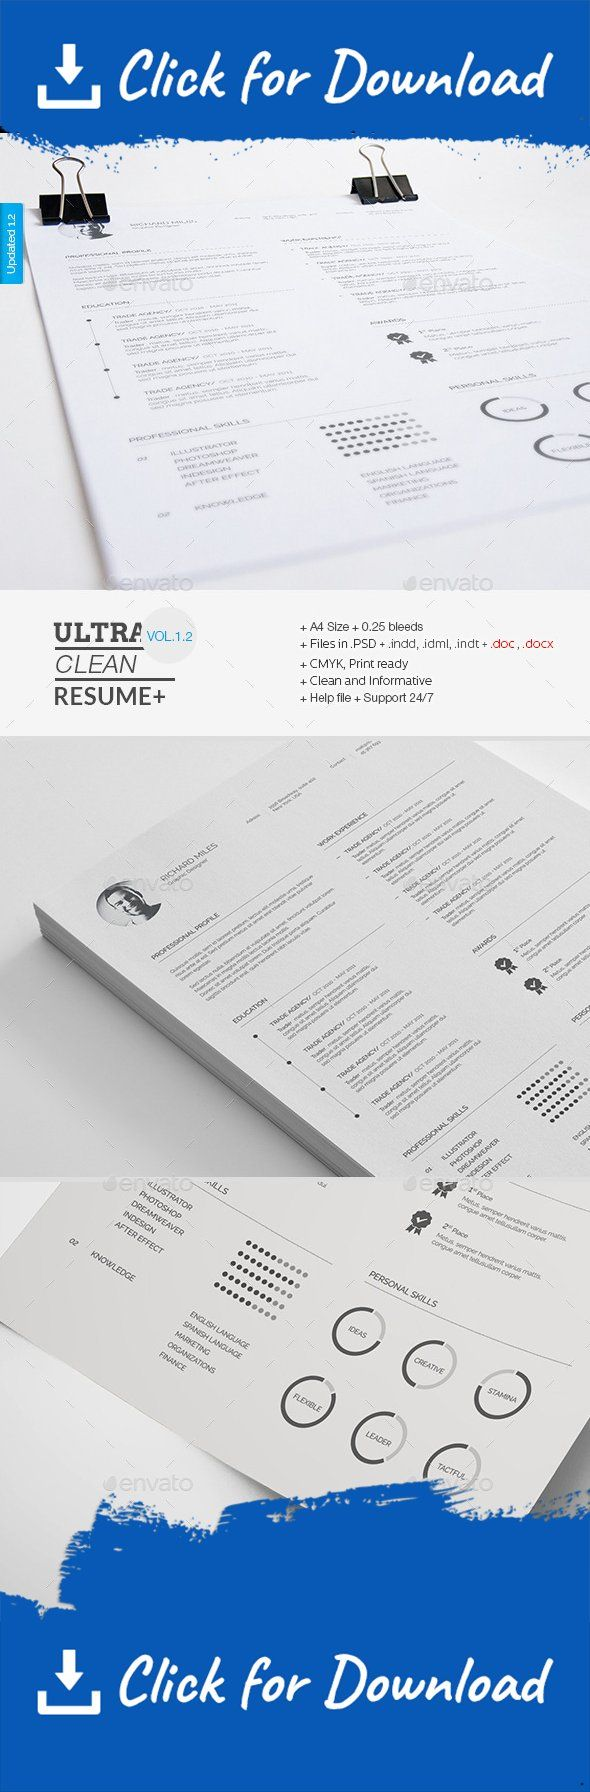 45 best Resumes images on Pinterest | Cv template, Design resume ...